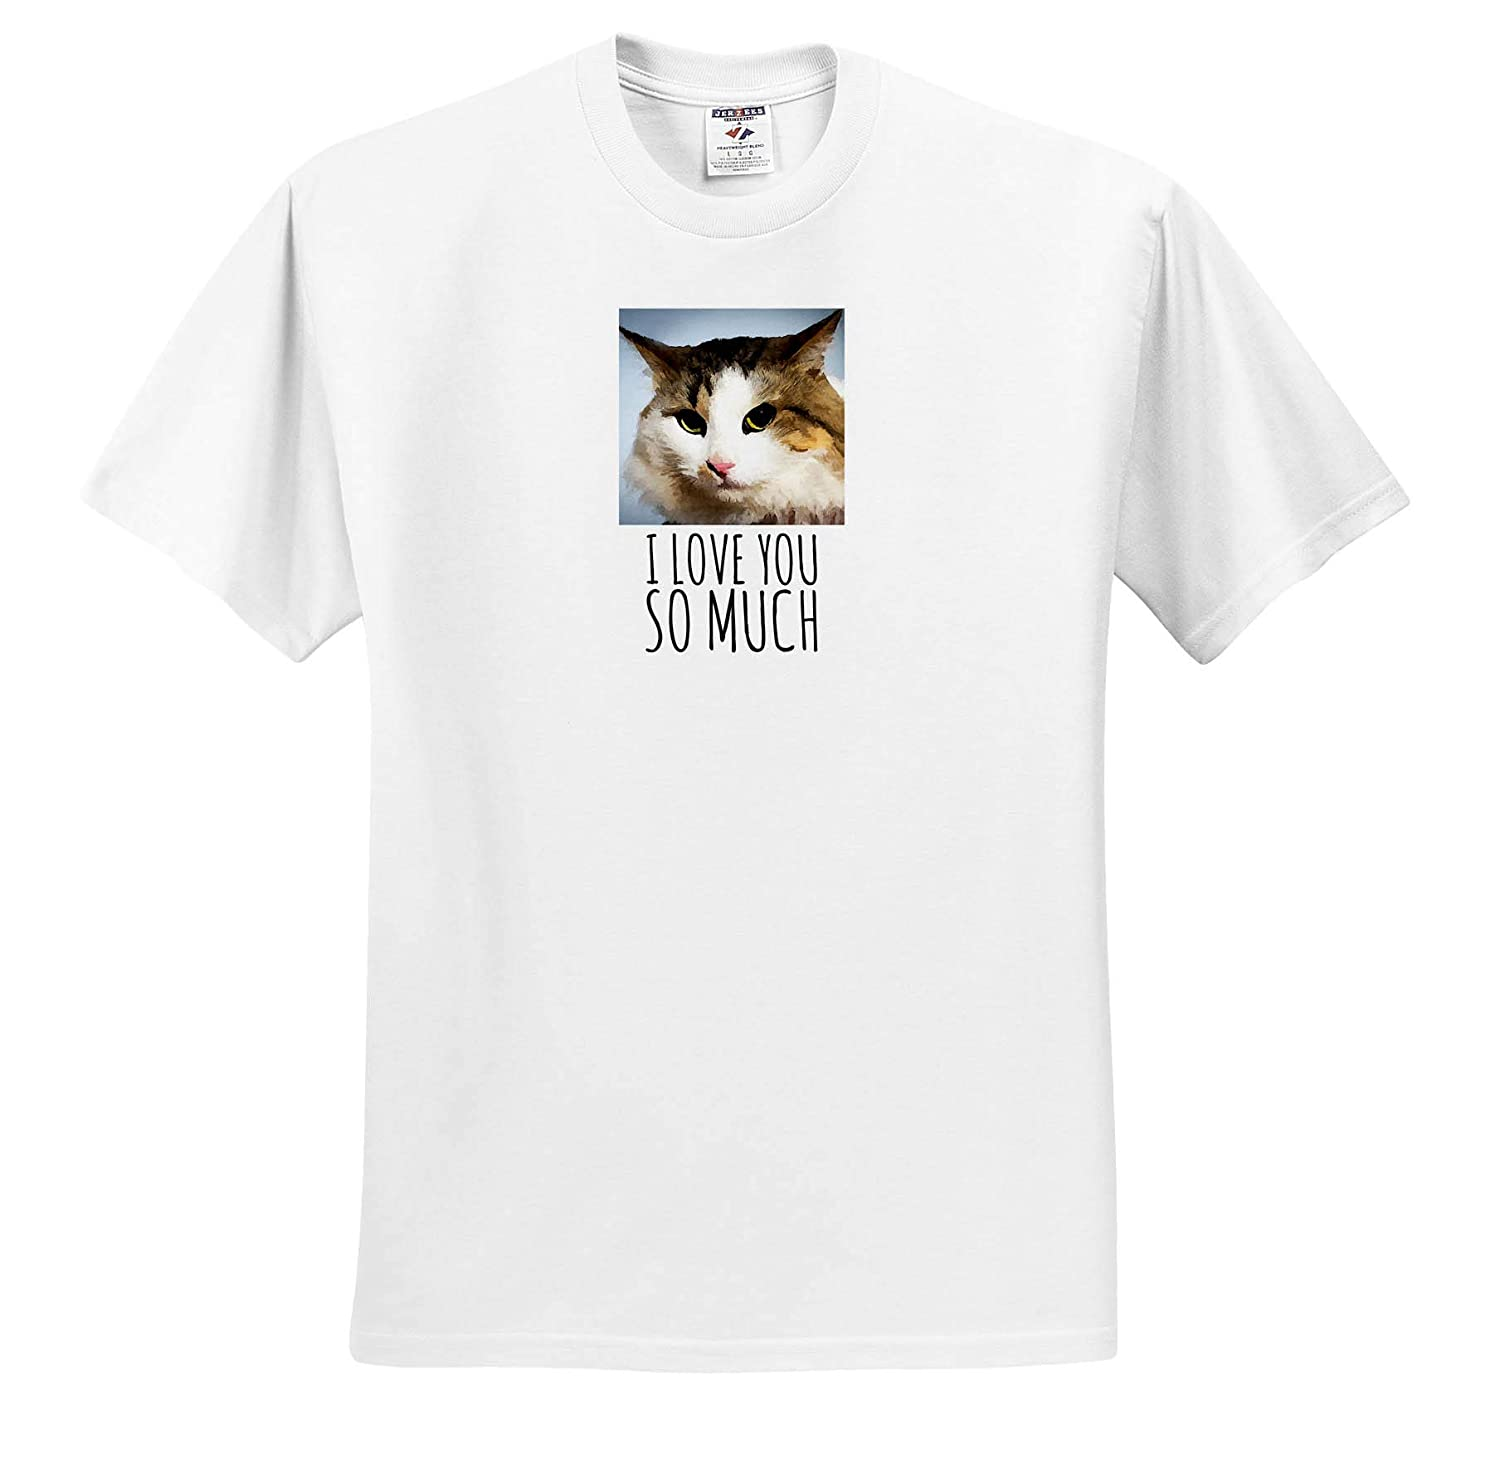 ts/_310494 Animals Cats Adorable Elegant cat Adult T-Shirt XL 3dRose Alexis Photography I Love You so Much